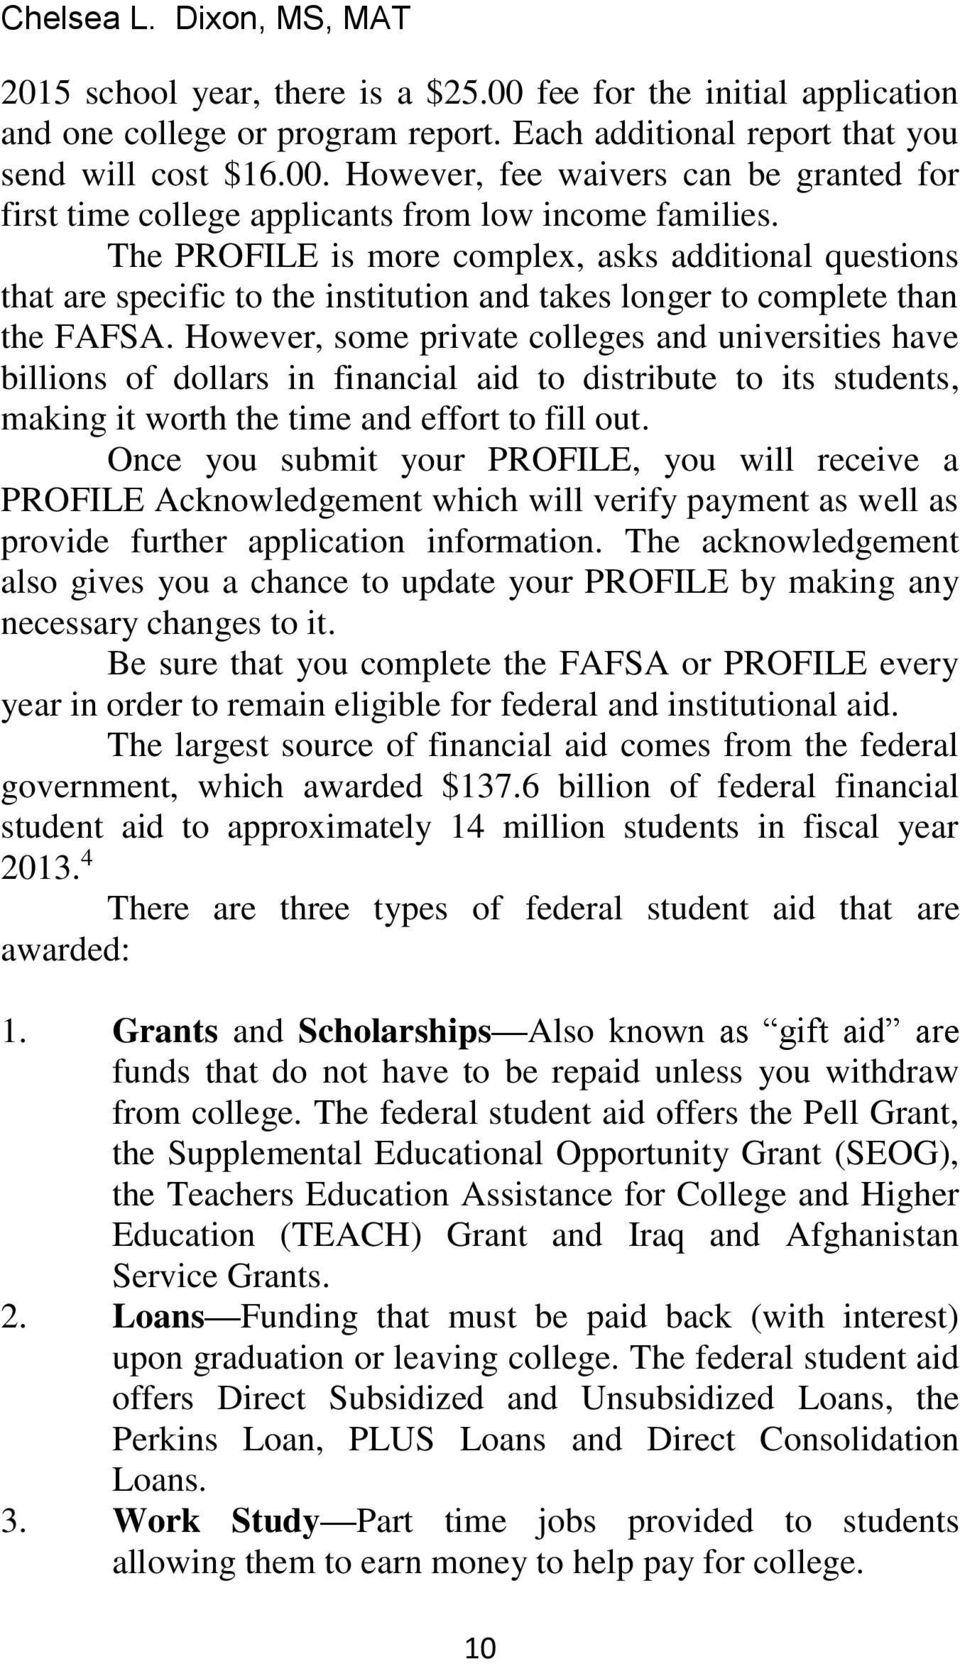 However, some private colleges and universities have billions of dollars in financial aid to distribute to its students, making it worth the time and effort to fill out.